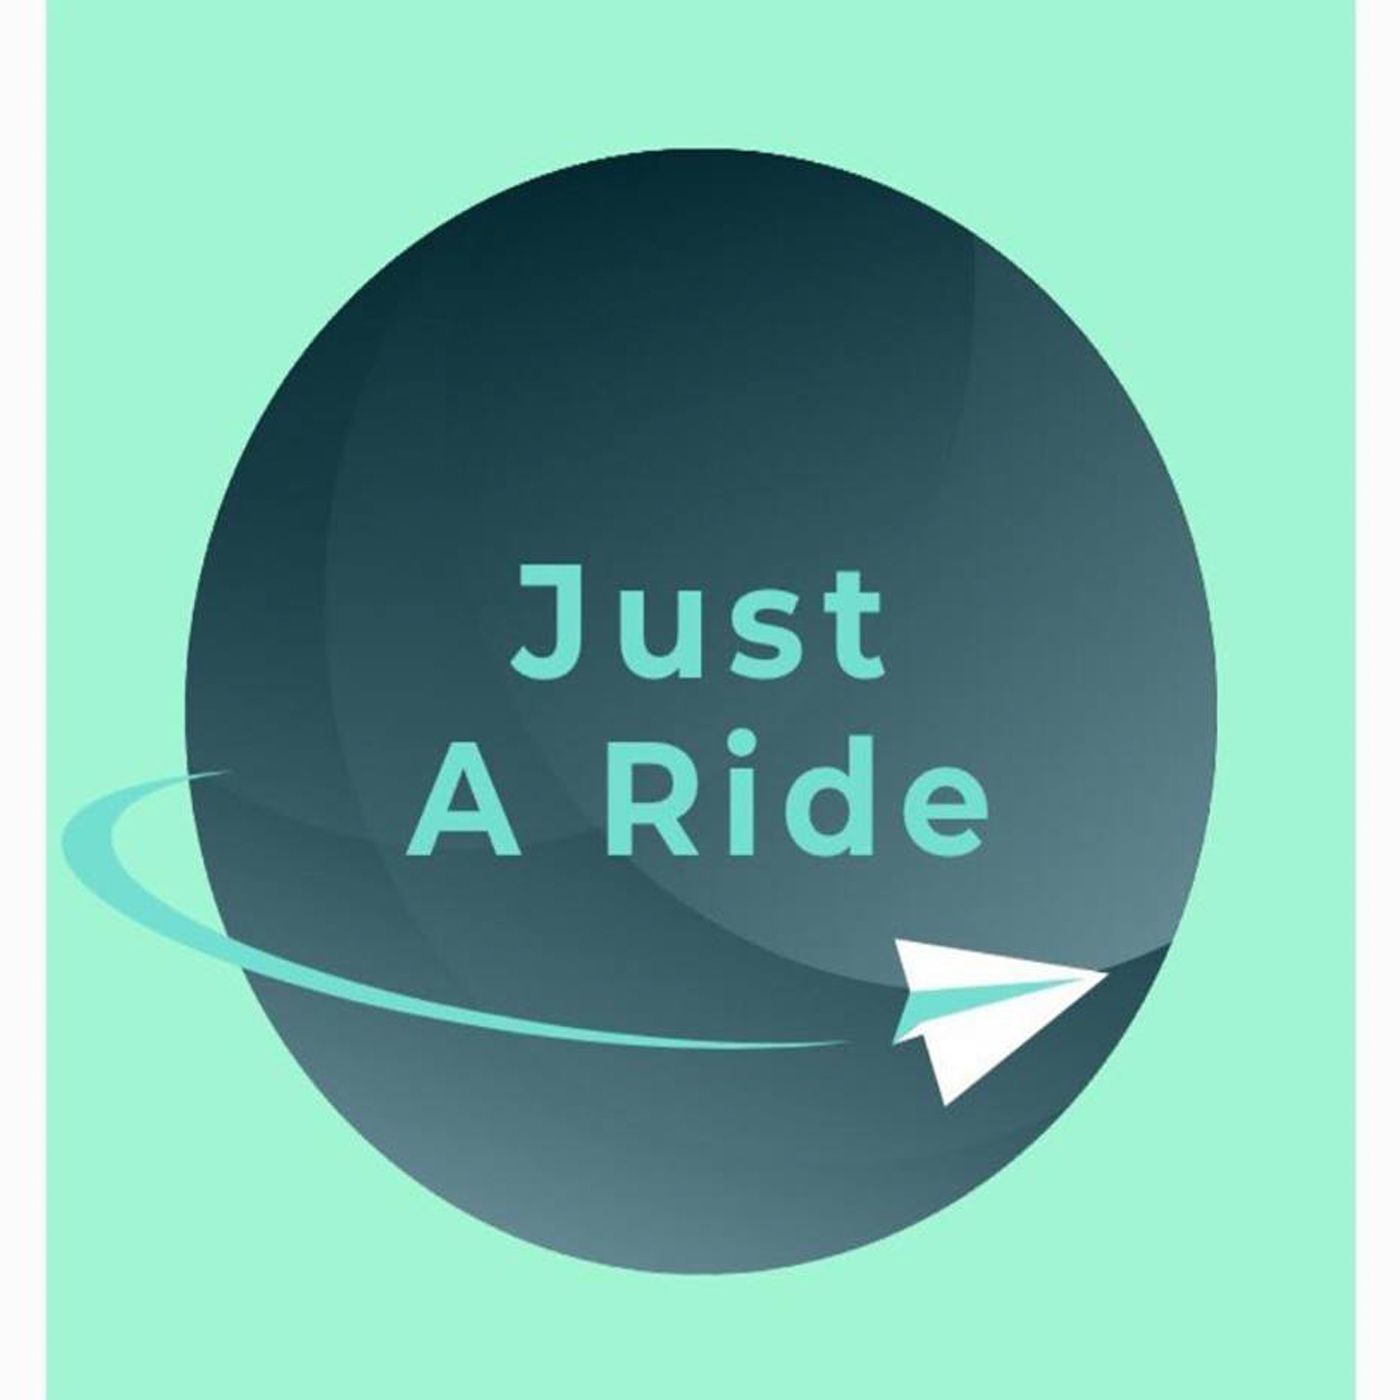 Just A Ride